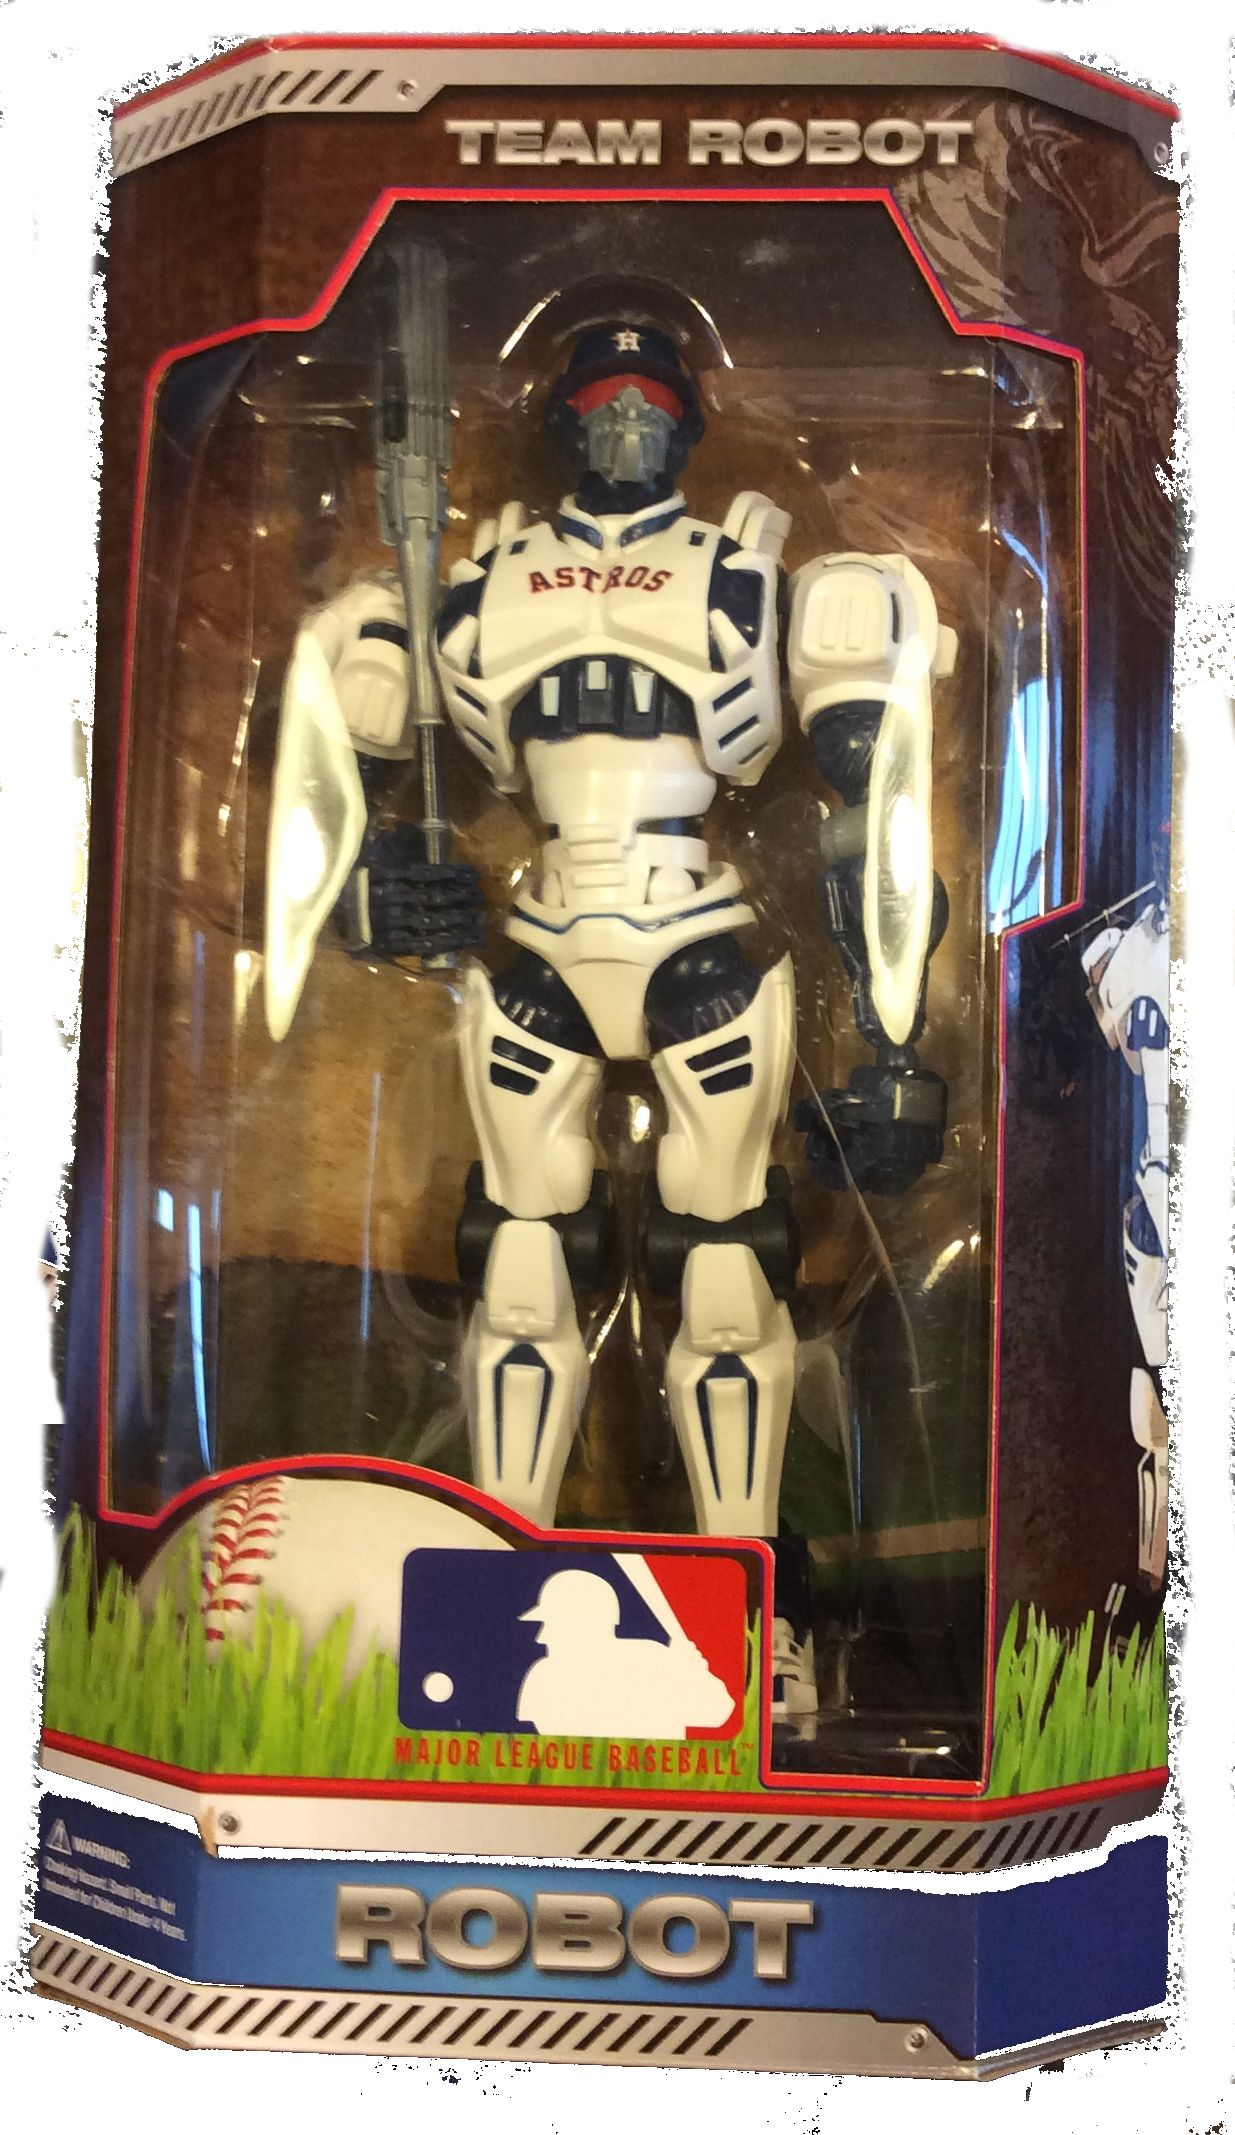 Fox Sports Cleatus Robot MLB Choose Your Team 10 Inch by Foamhead